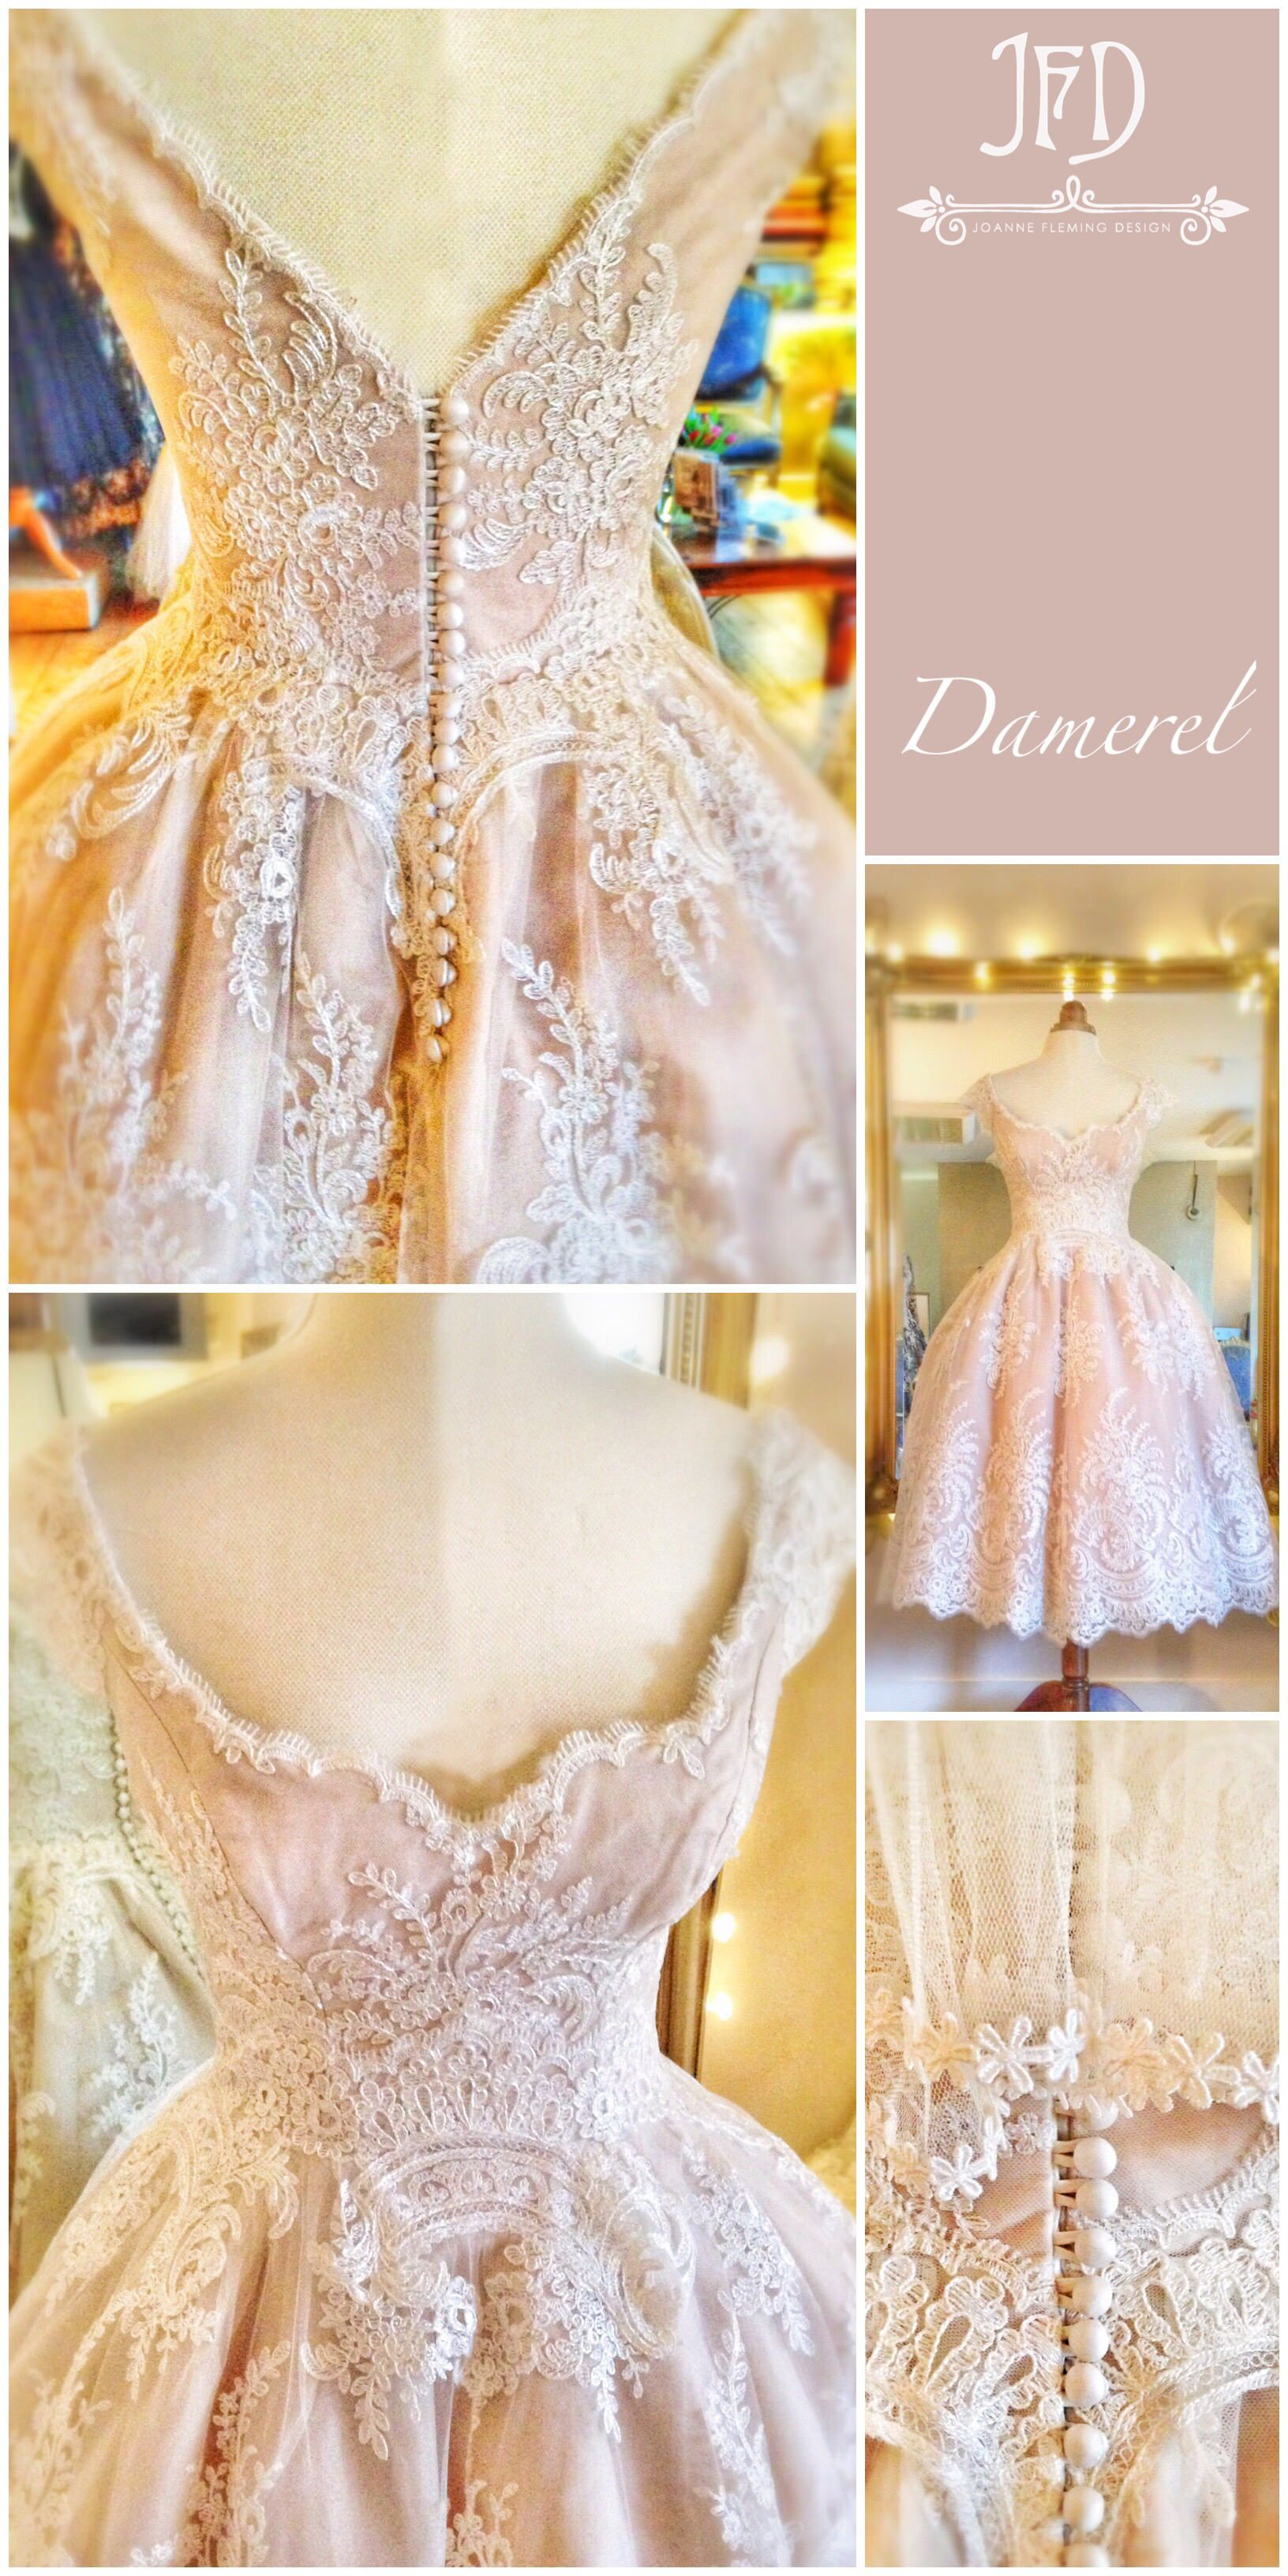 2c773019aab Ivory French lace and blush silk tea length wedding dress by Joanne Fleming  Design